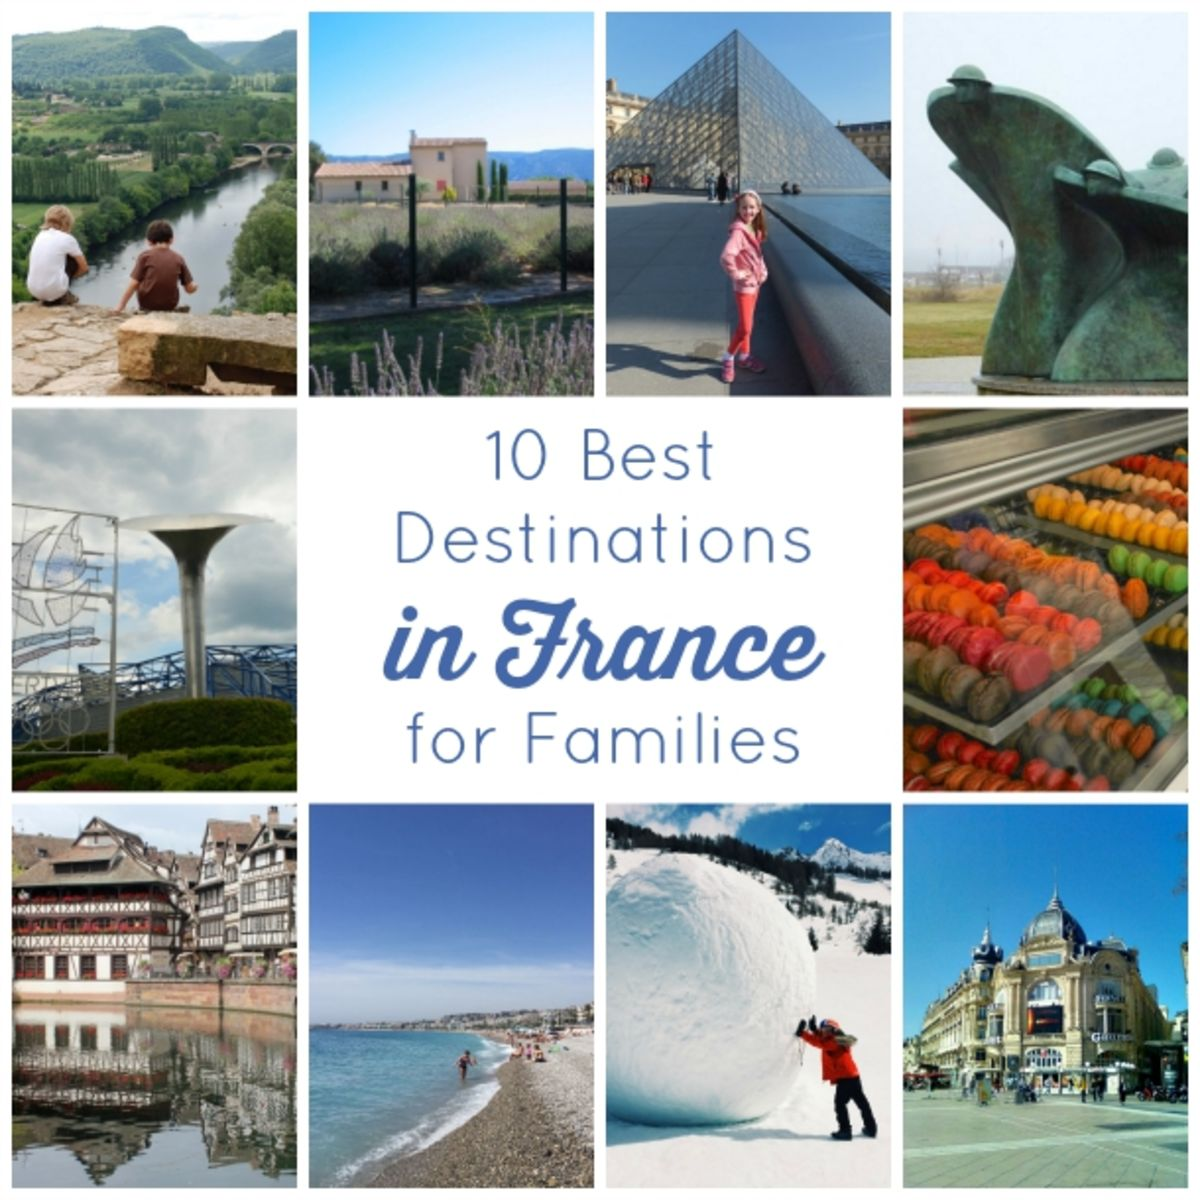 Headline for 10 Best Destinations in France for Families